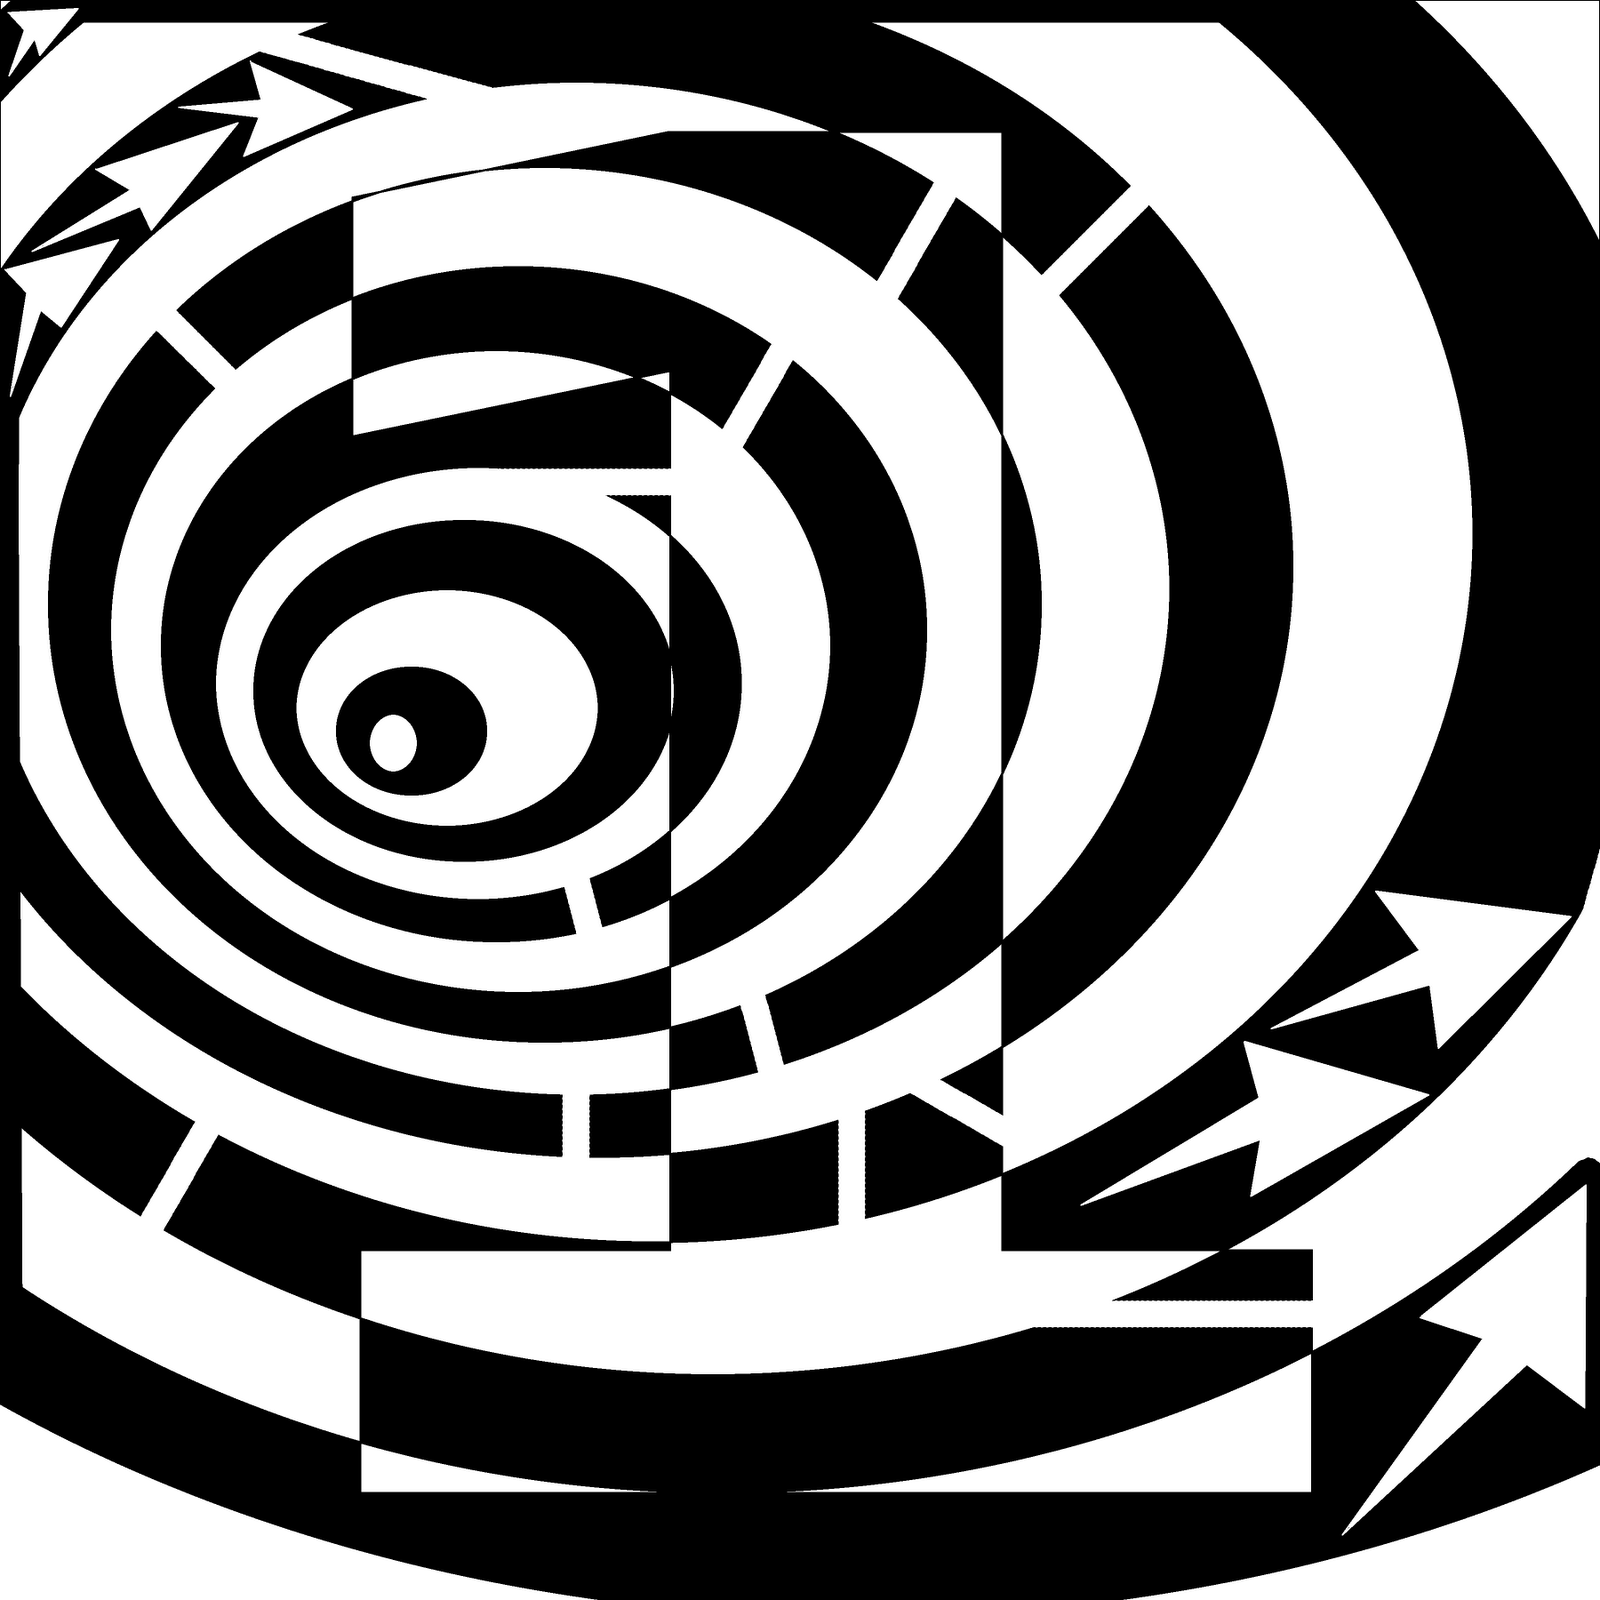 number maze optical illusion artist frimer yonatan illusions drawing fantastic numbers mazes drawings proportions